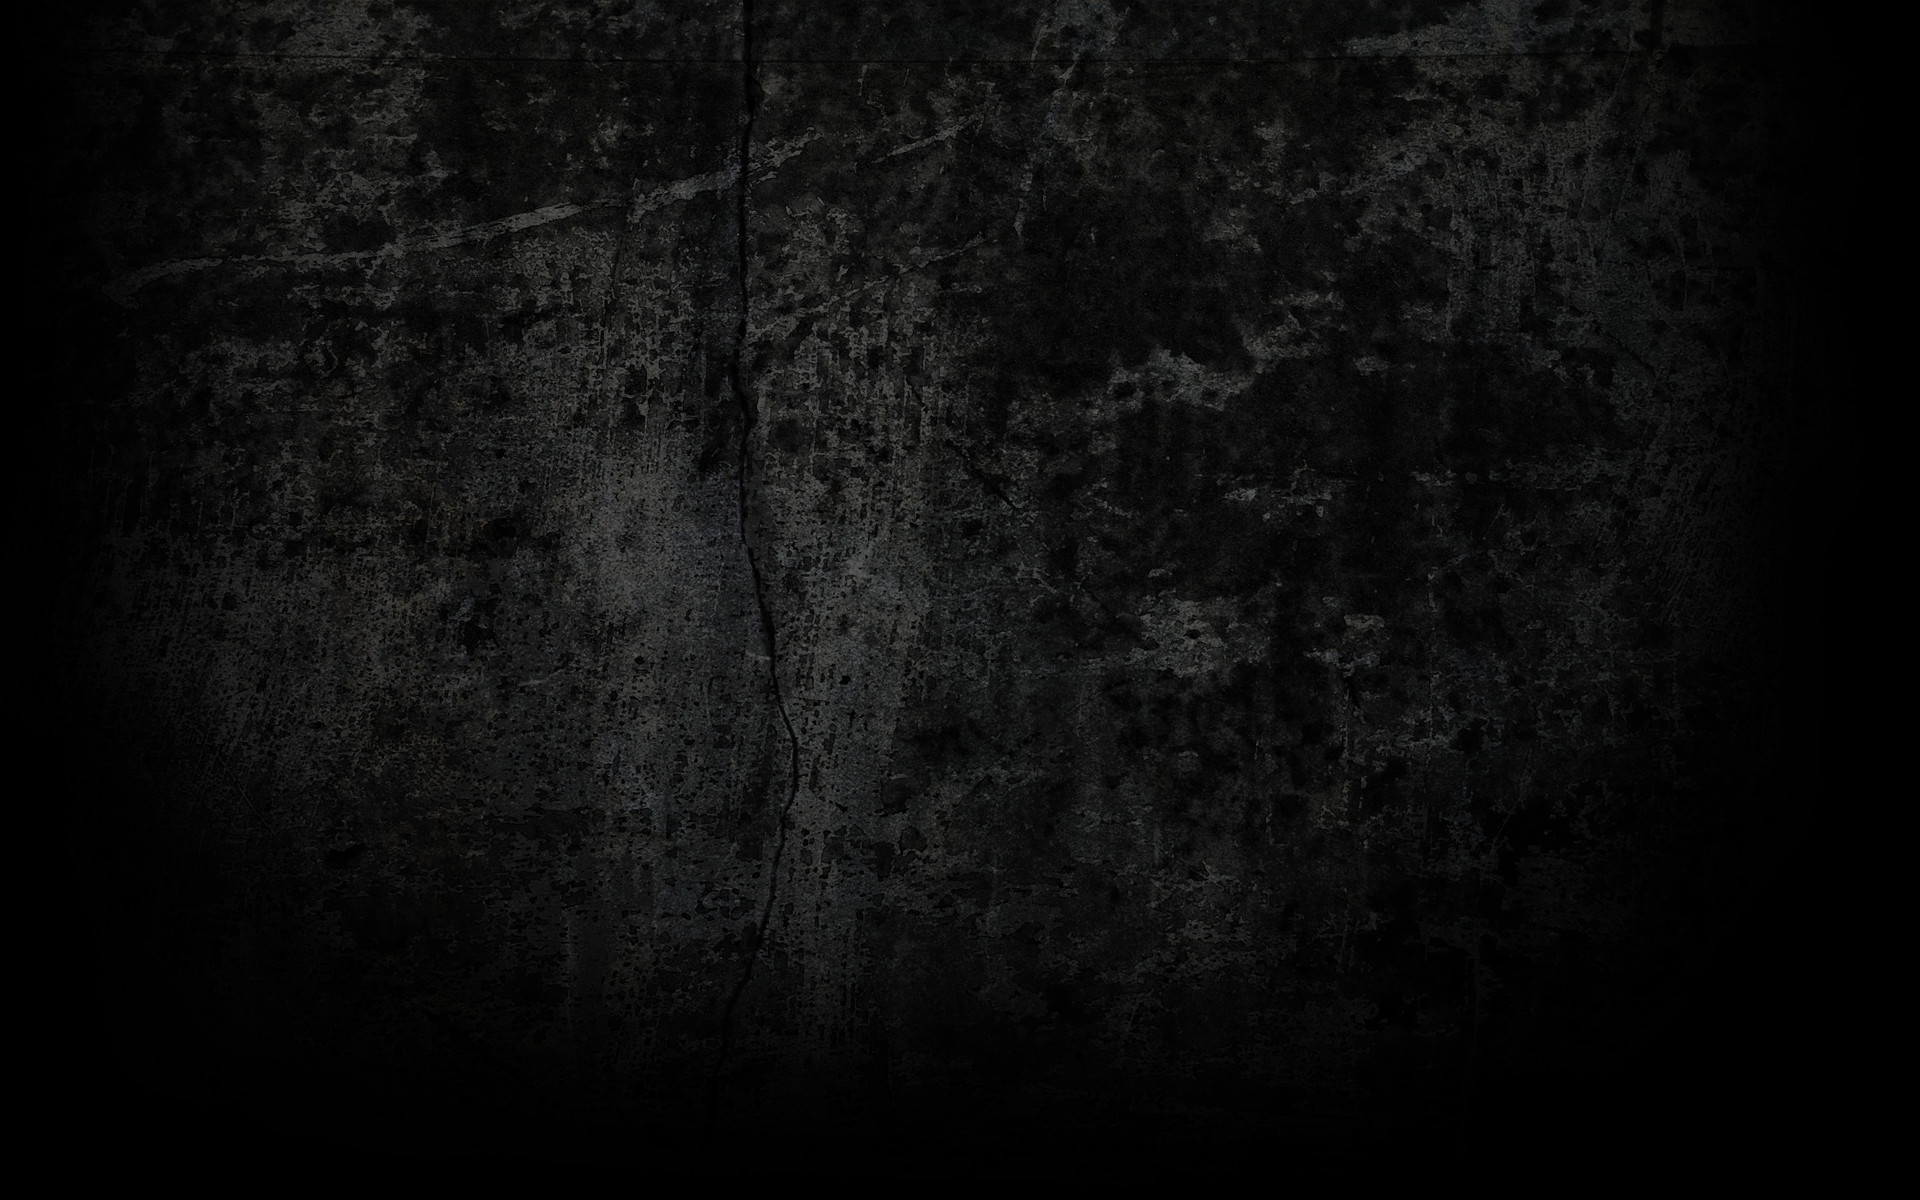 1920x1200 2136x3015 Black Stone Wallpaper Images & Pictures - Moyuk